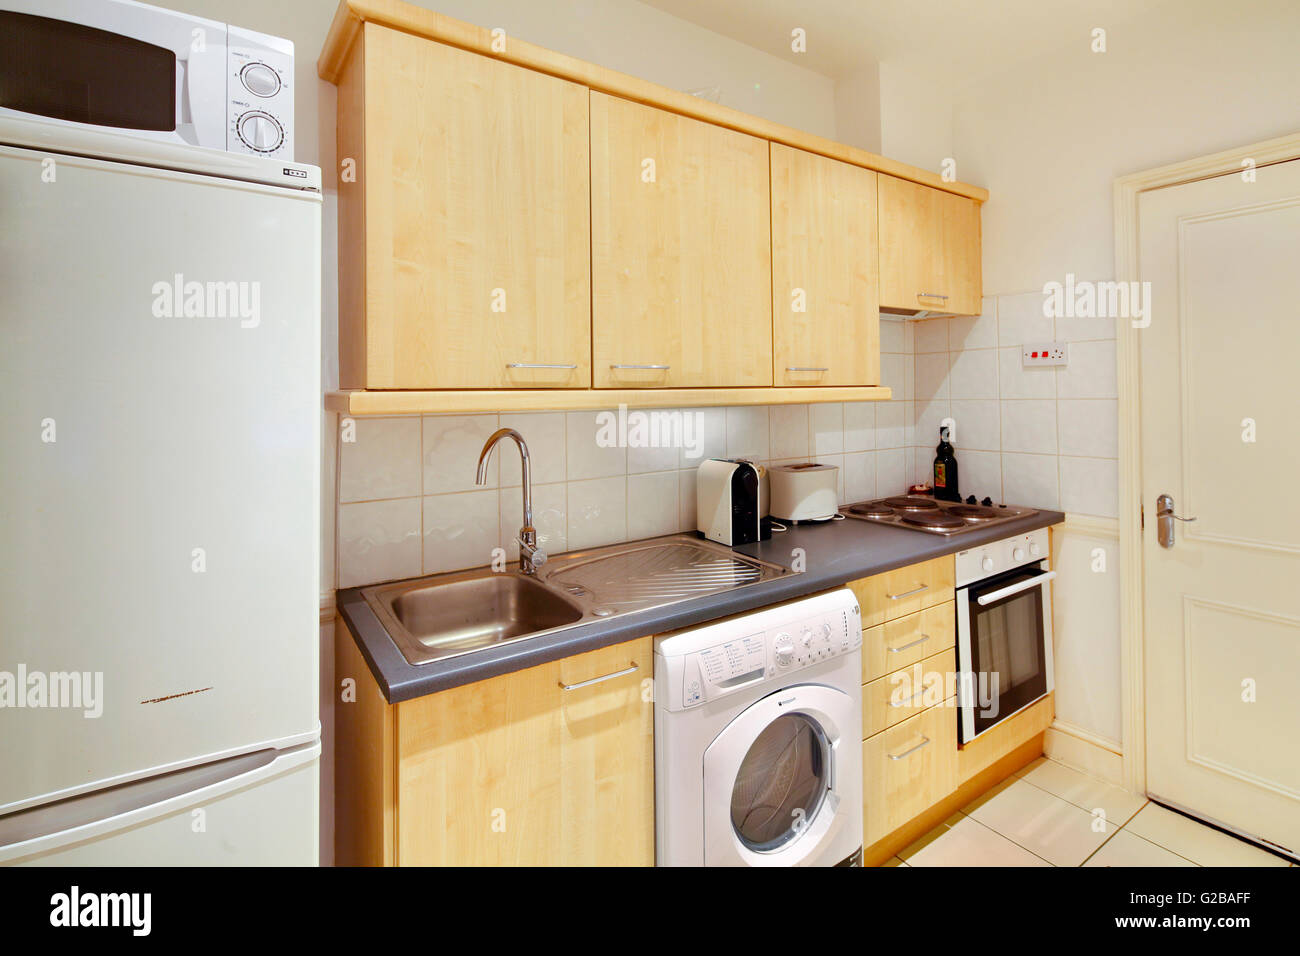 Harrington Gardens. View of an outdated worn kitchen. - Stock Image